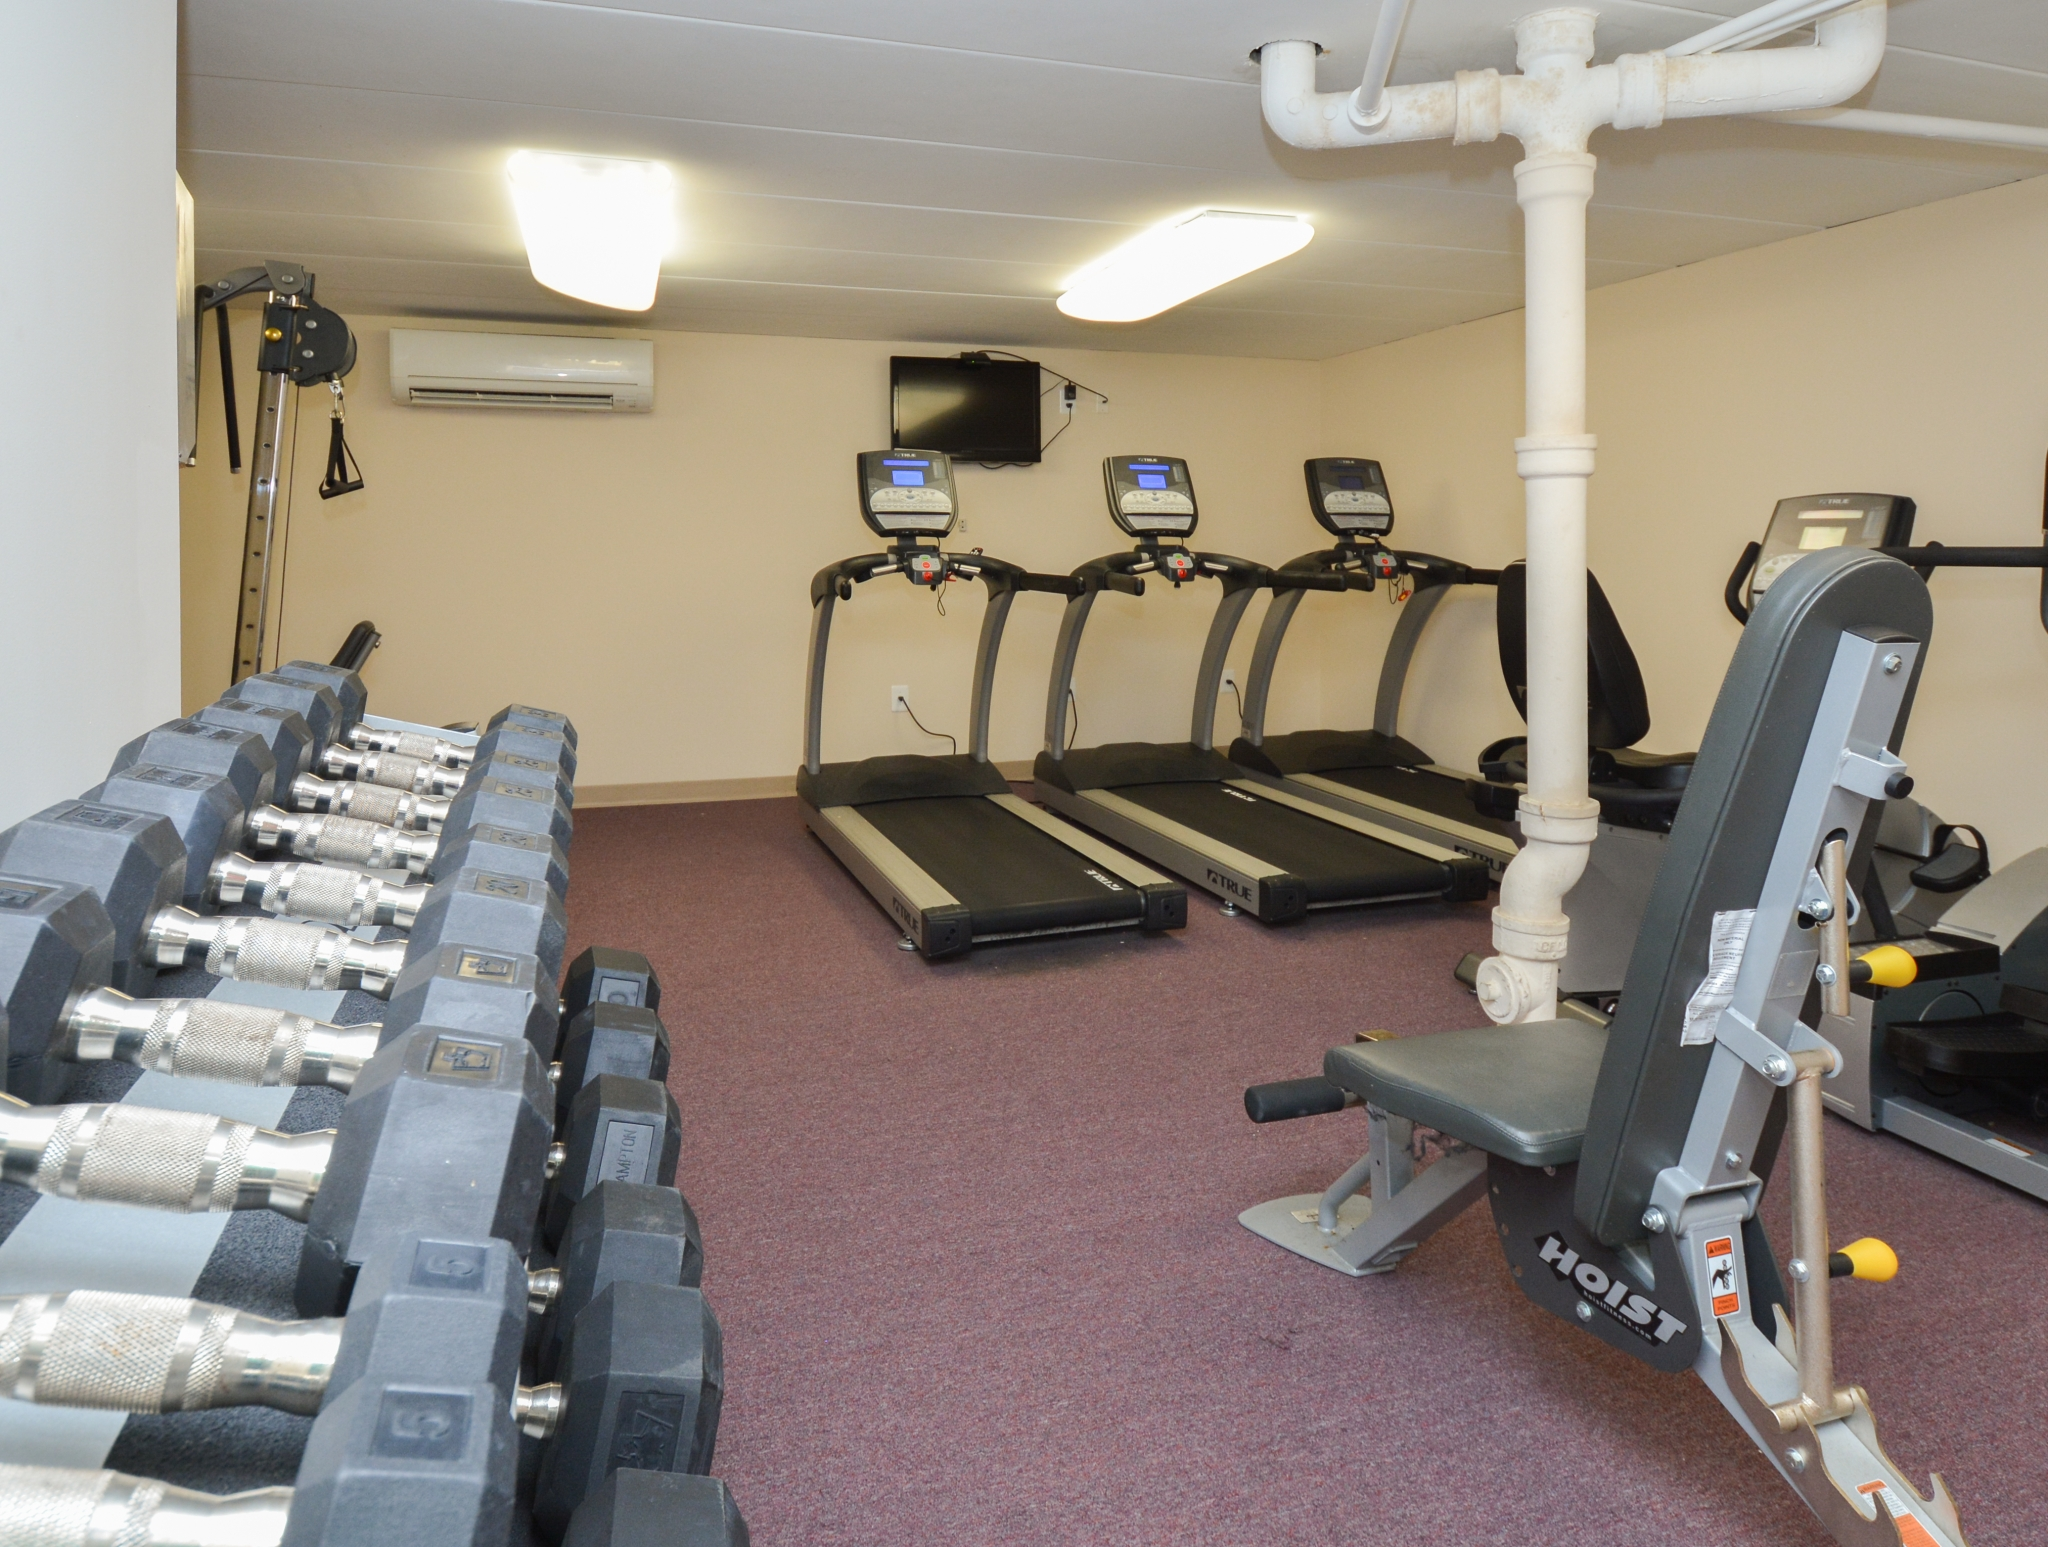 Fitness Center with Dumbbells, Treadmills, Cable Machine, and Bench | Apartments near Media, PA